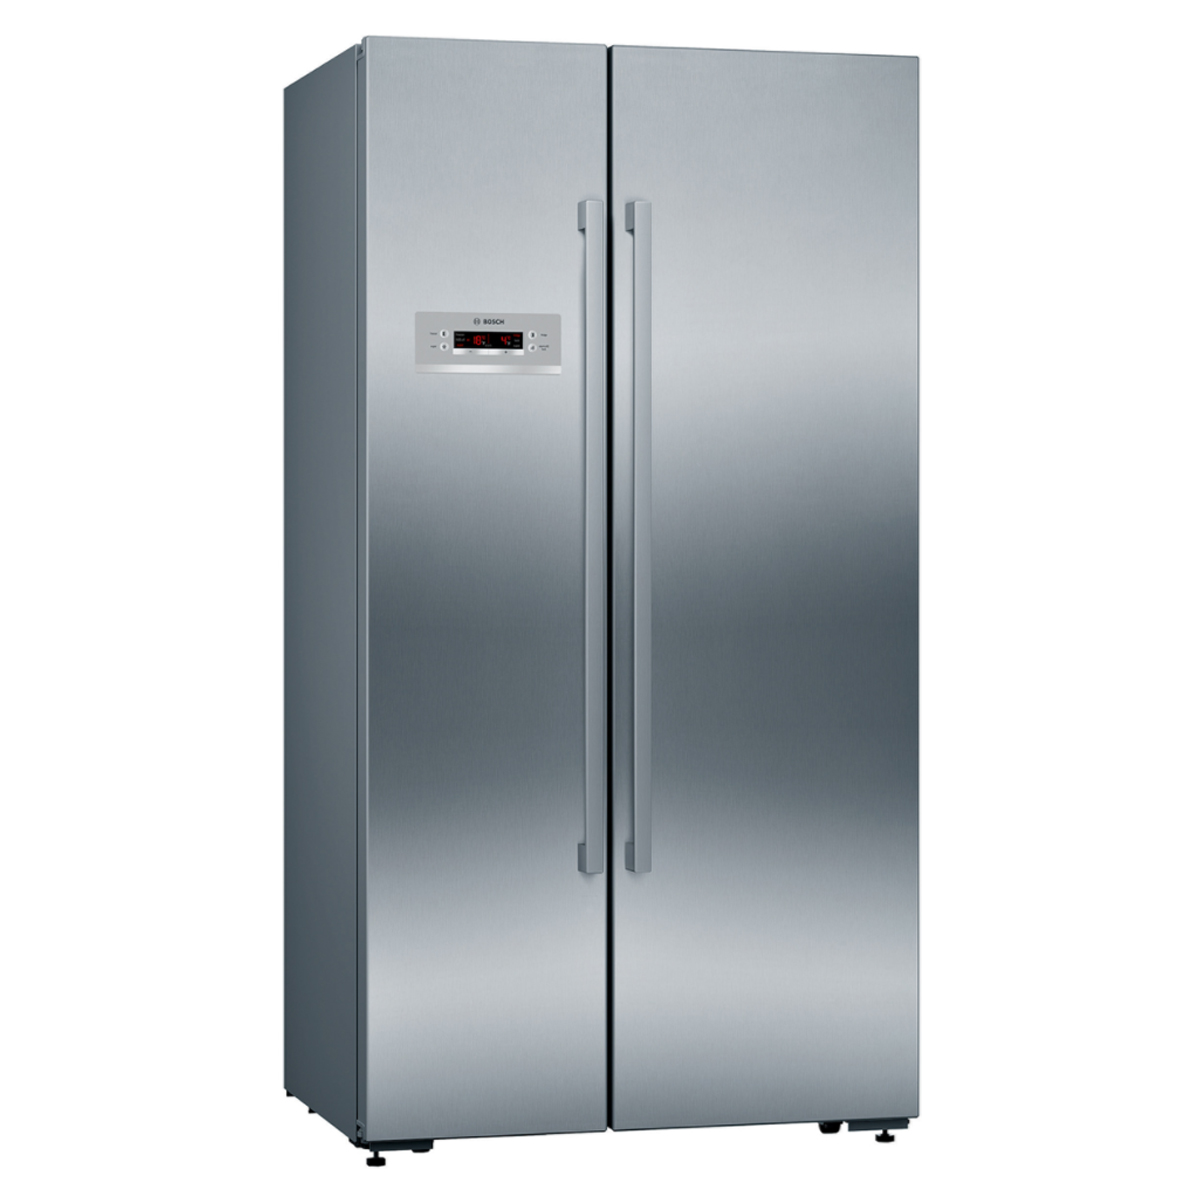 bosch kan92vi30a 652l side by side fridge home clearance. Black Bedroom Furniture Sets. Home Design Ideas